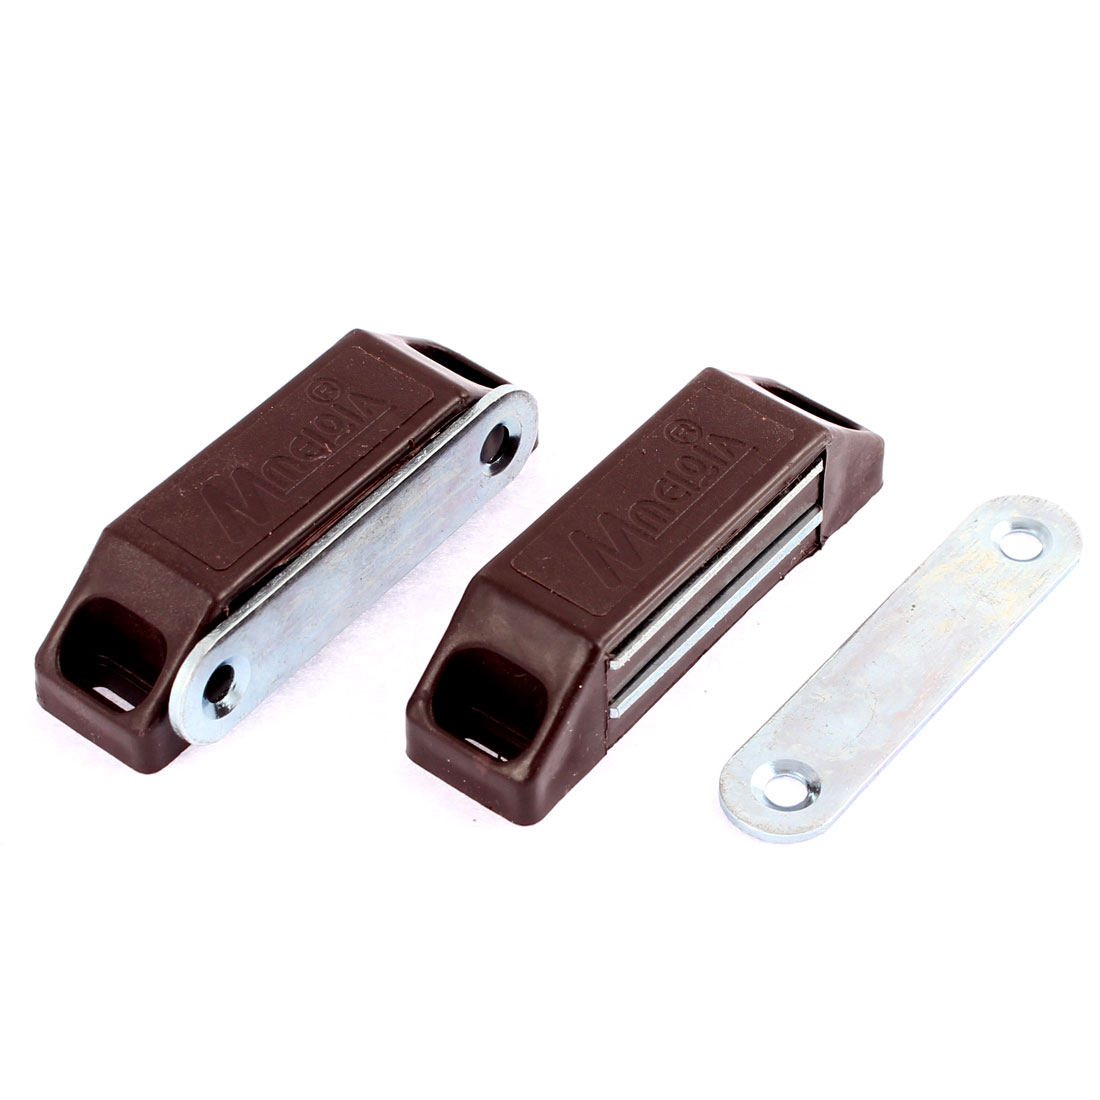 2pcs Cupboard Cabinet Furniture Magnetic Catch Door Latch 60mm x 18mm Dark Brown